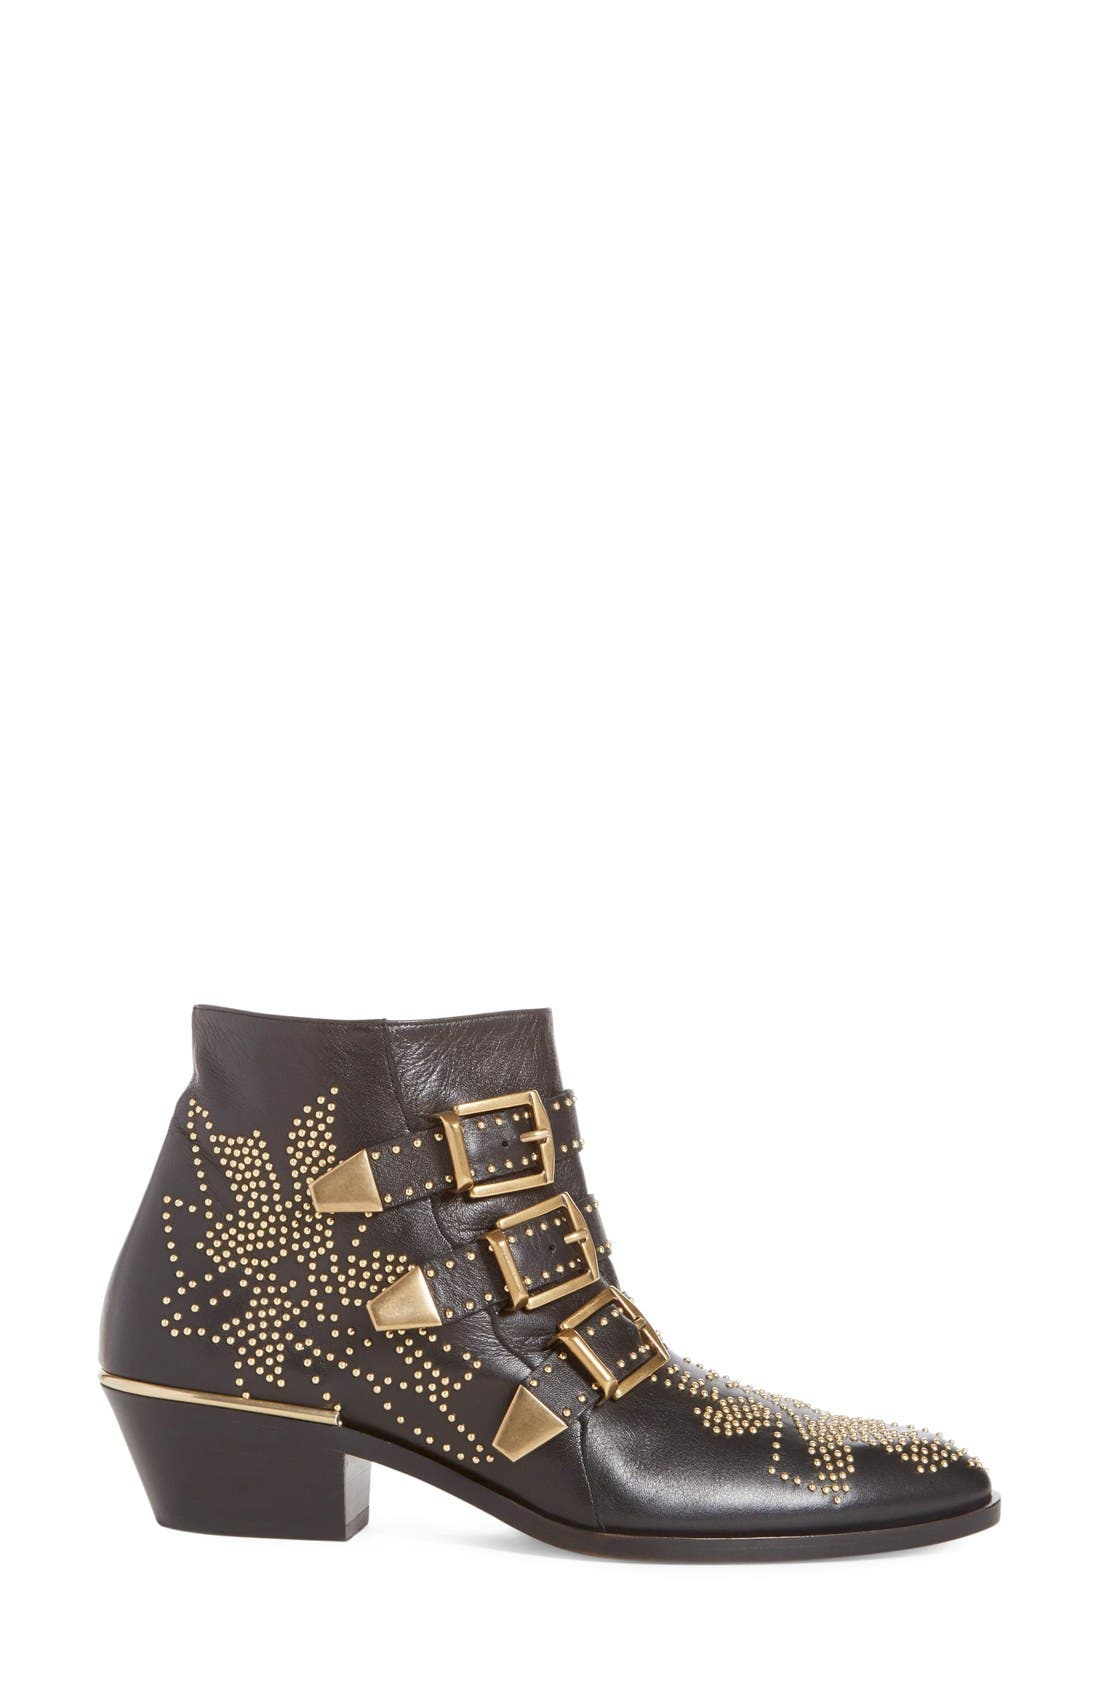 CHLOÉ, Susanna Stud Buckle Bootie, Alternate thumbnail 7, color, BLACK GOLD LEATHER